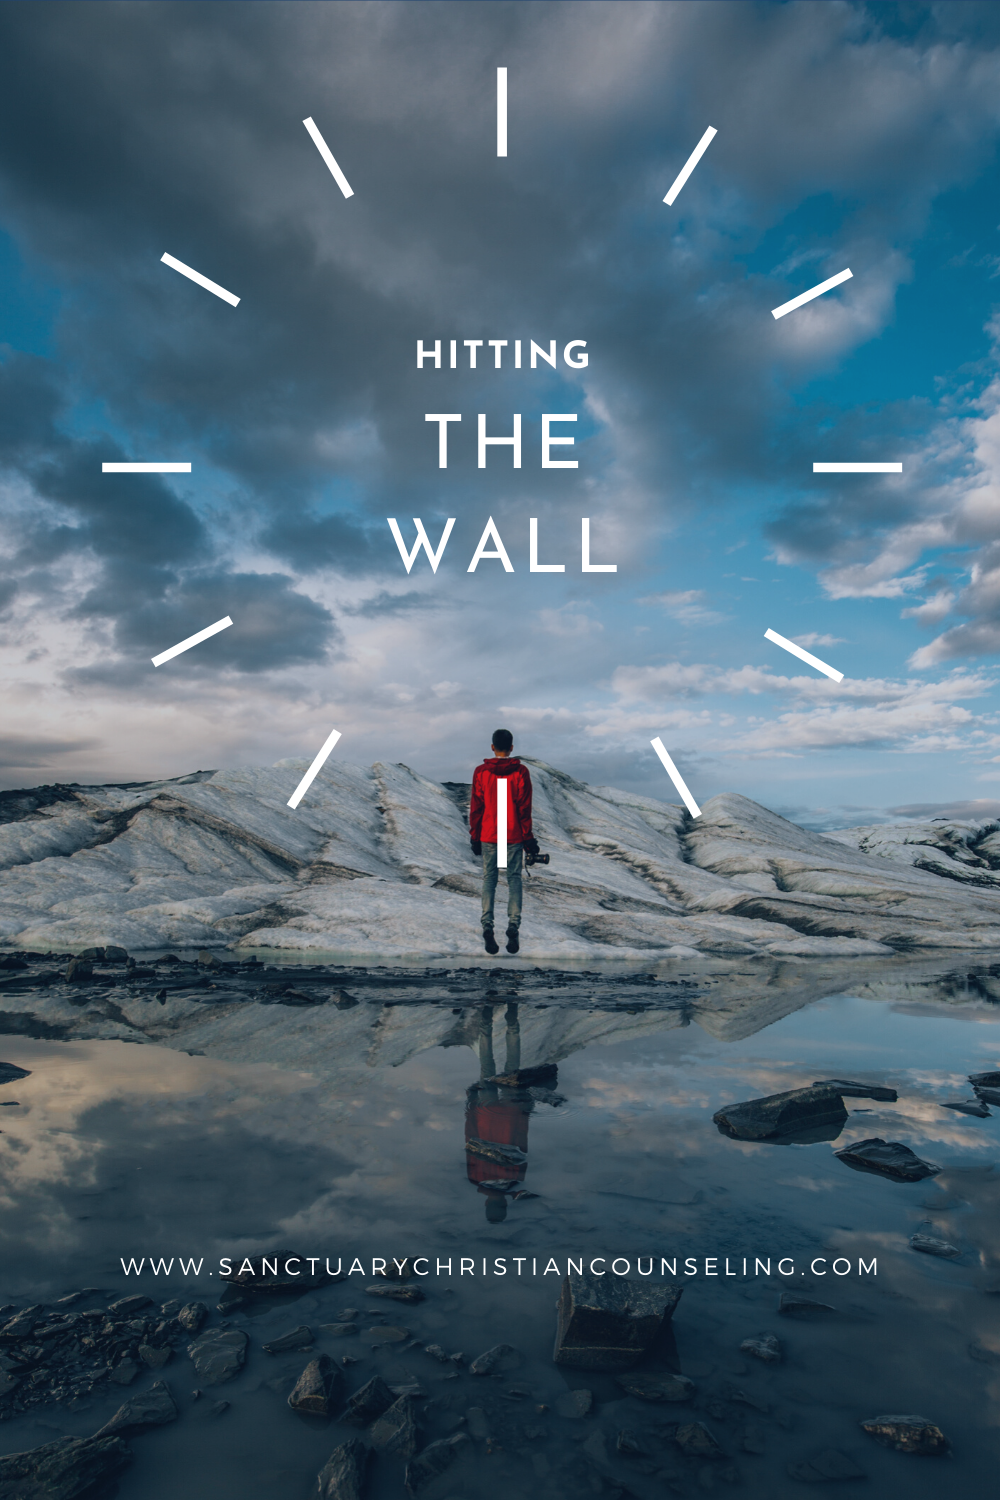 Hitting the wall logo -- many standing in polar region, Shippensburg PA Sanctuary Christian Counseling